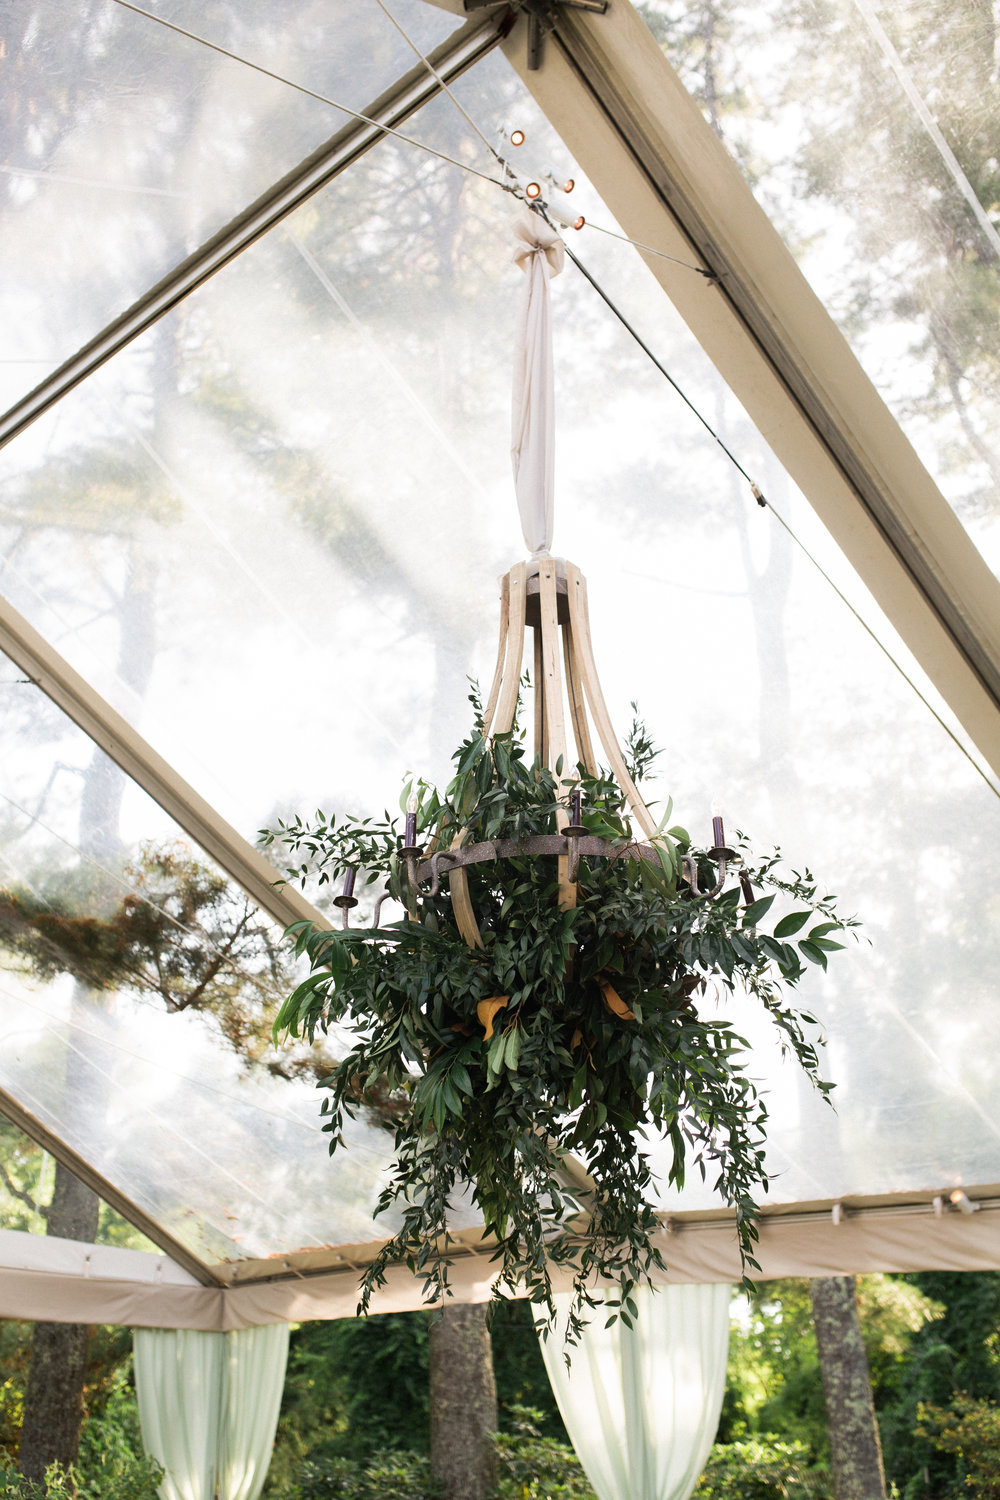 virginia tented at-home wedding decor floral chandelier